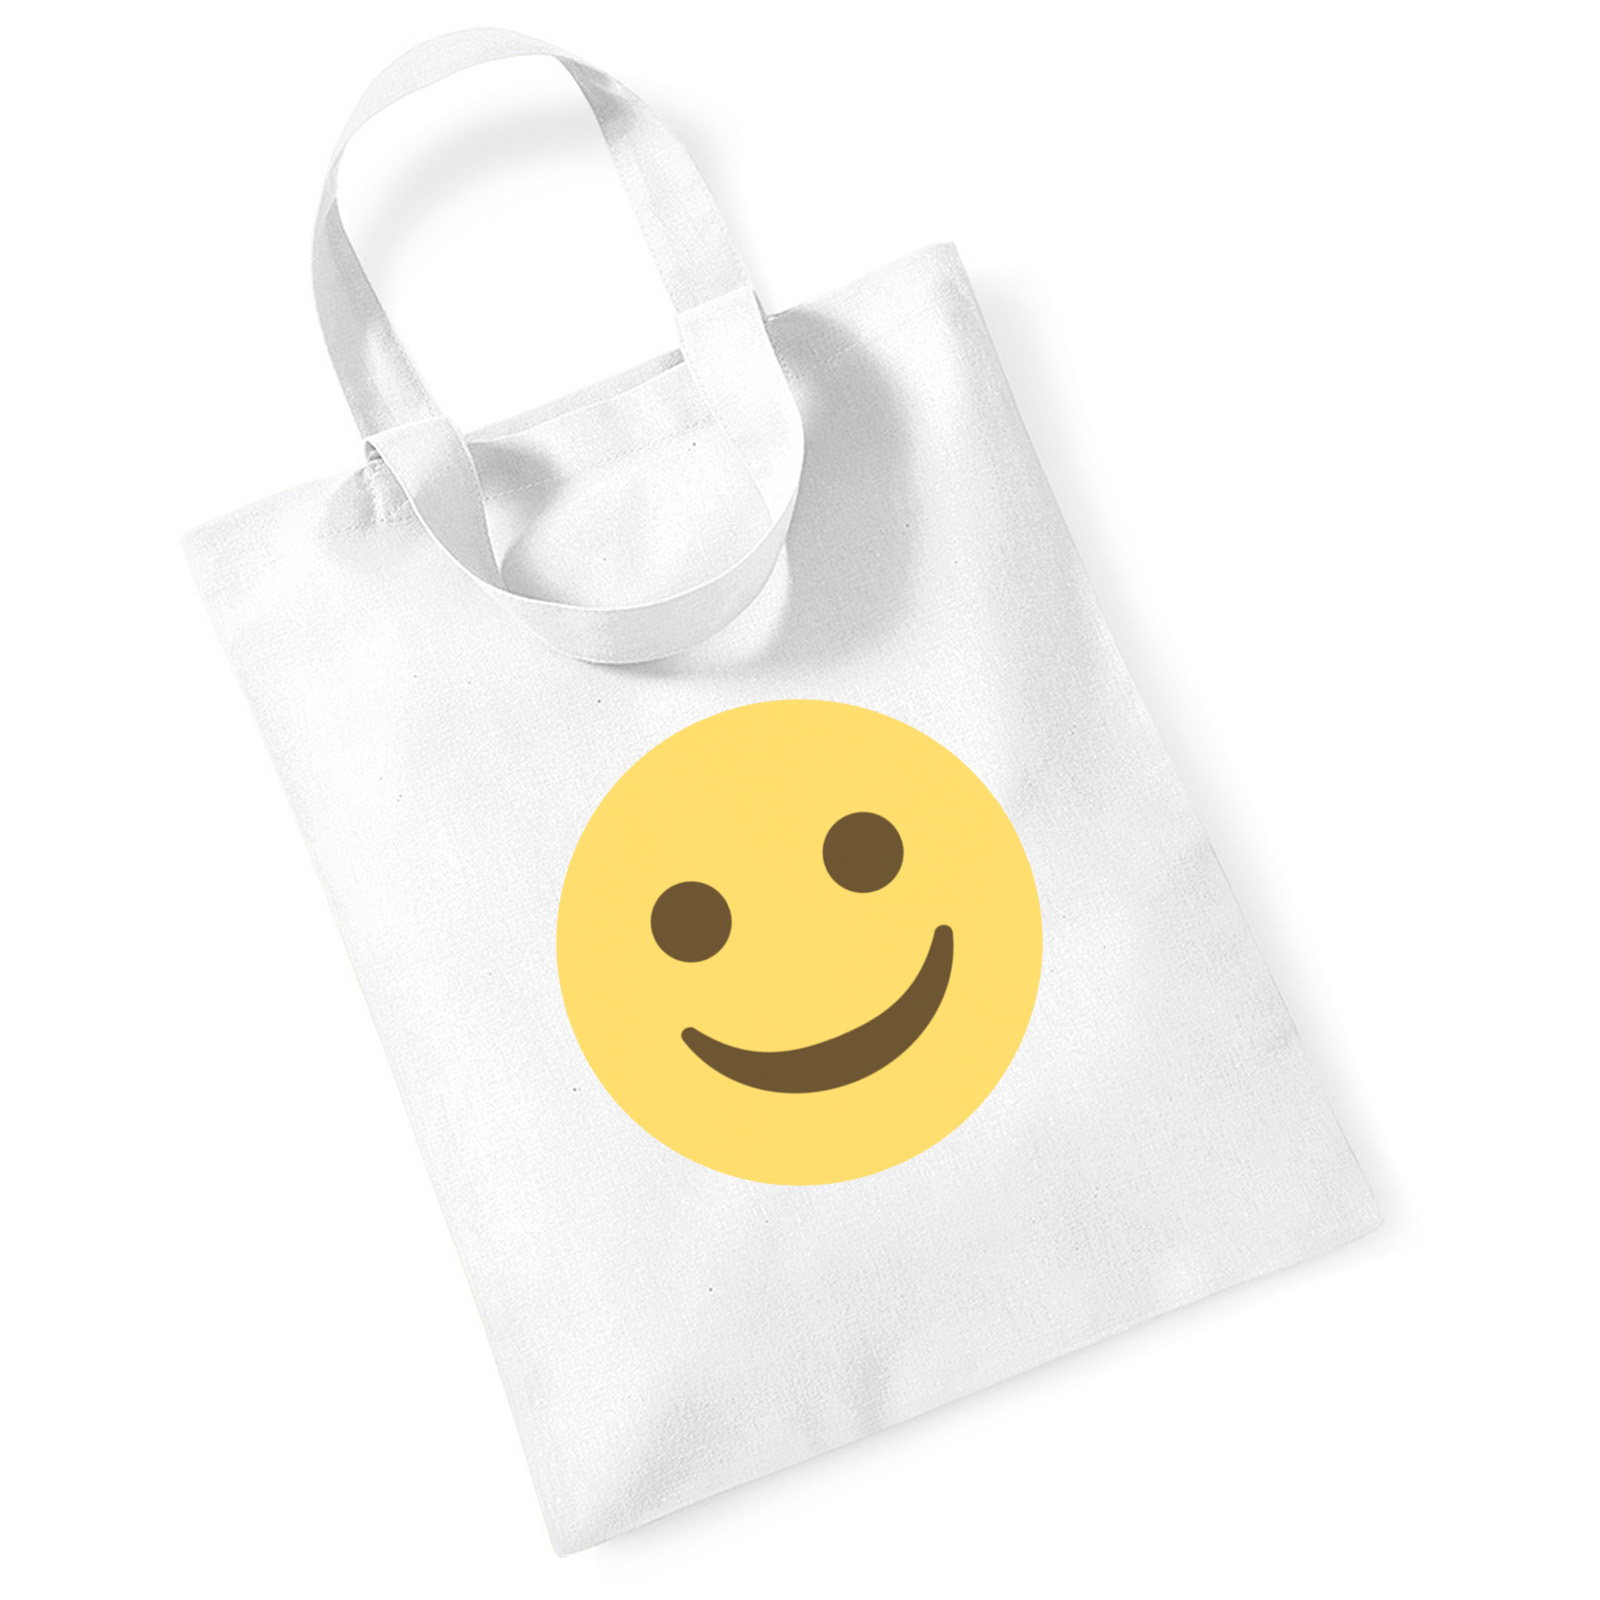 df48ae5fd110 Emoji White Smiling Face Mini Bag For Life. Available in many ...